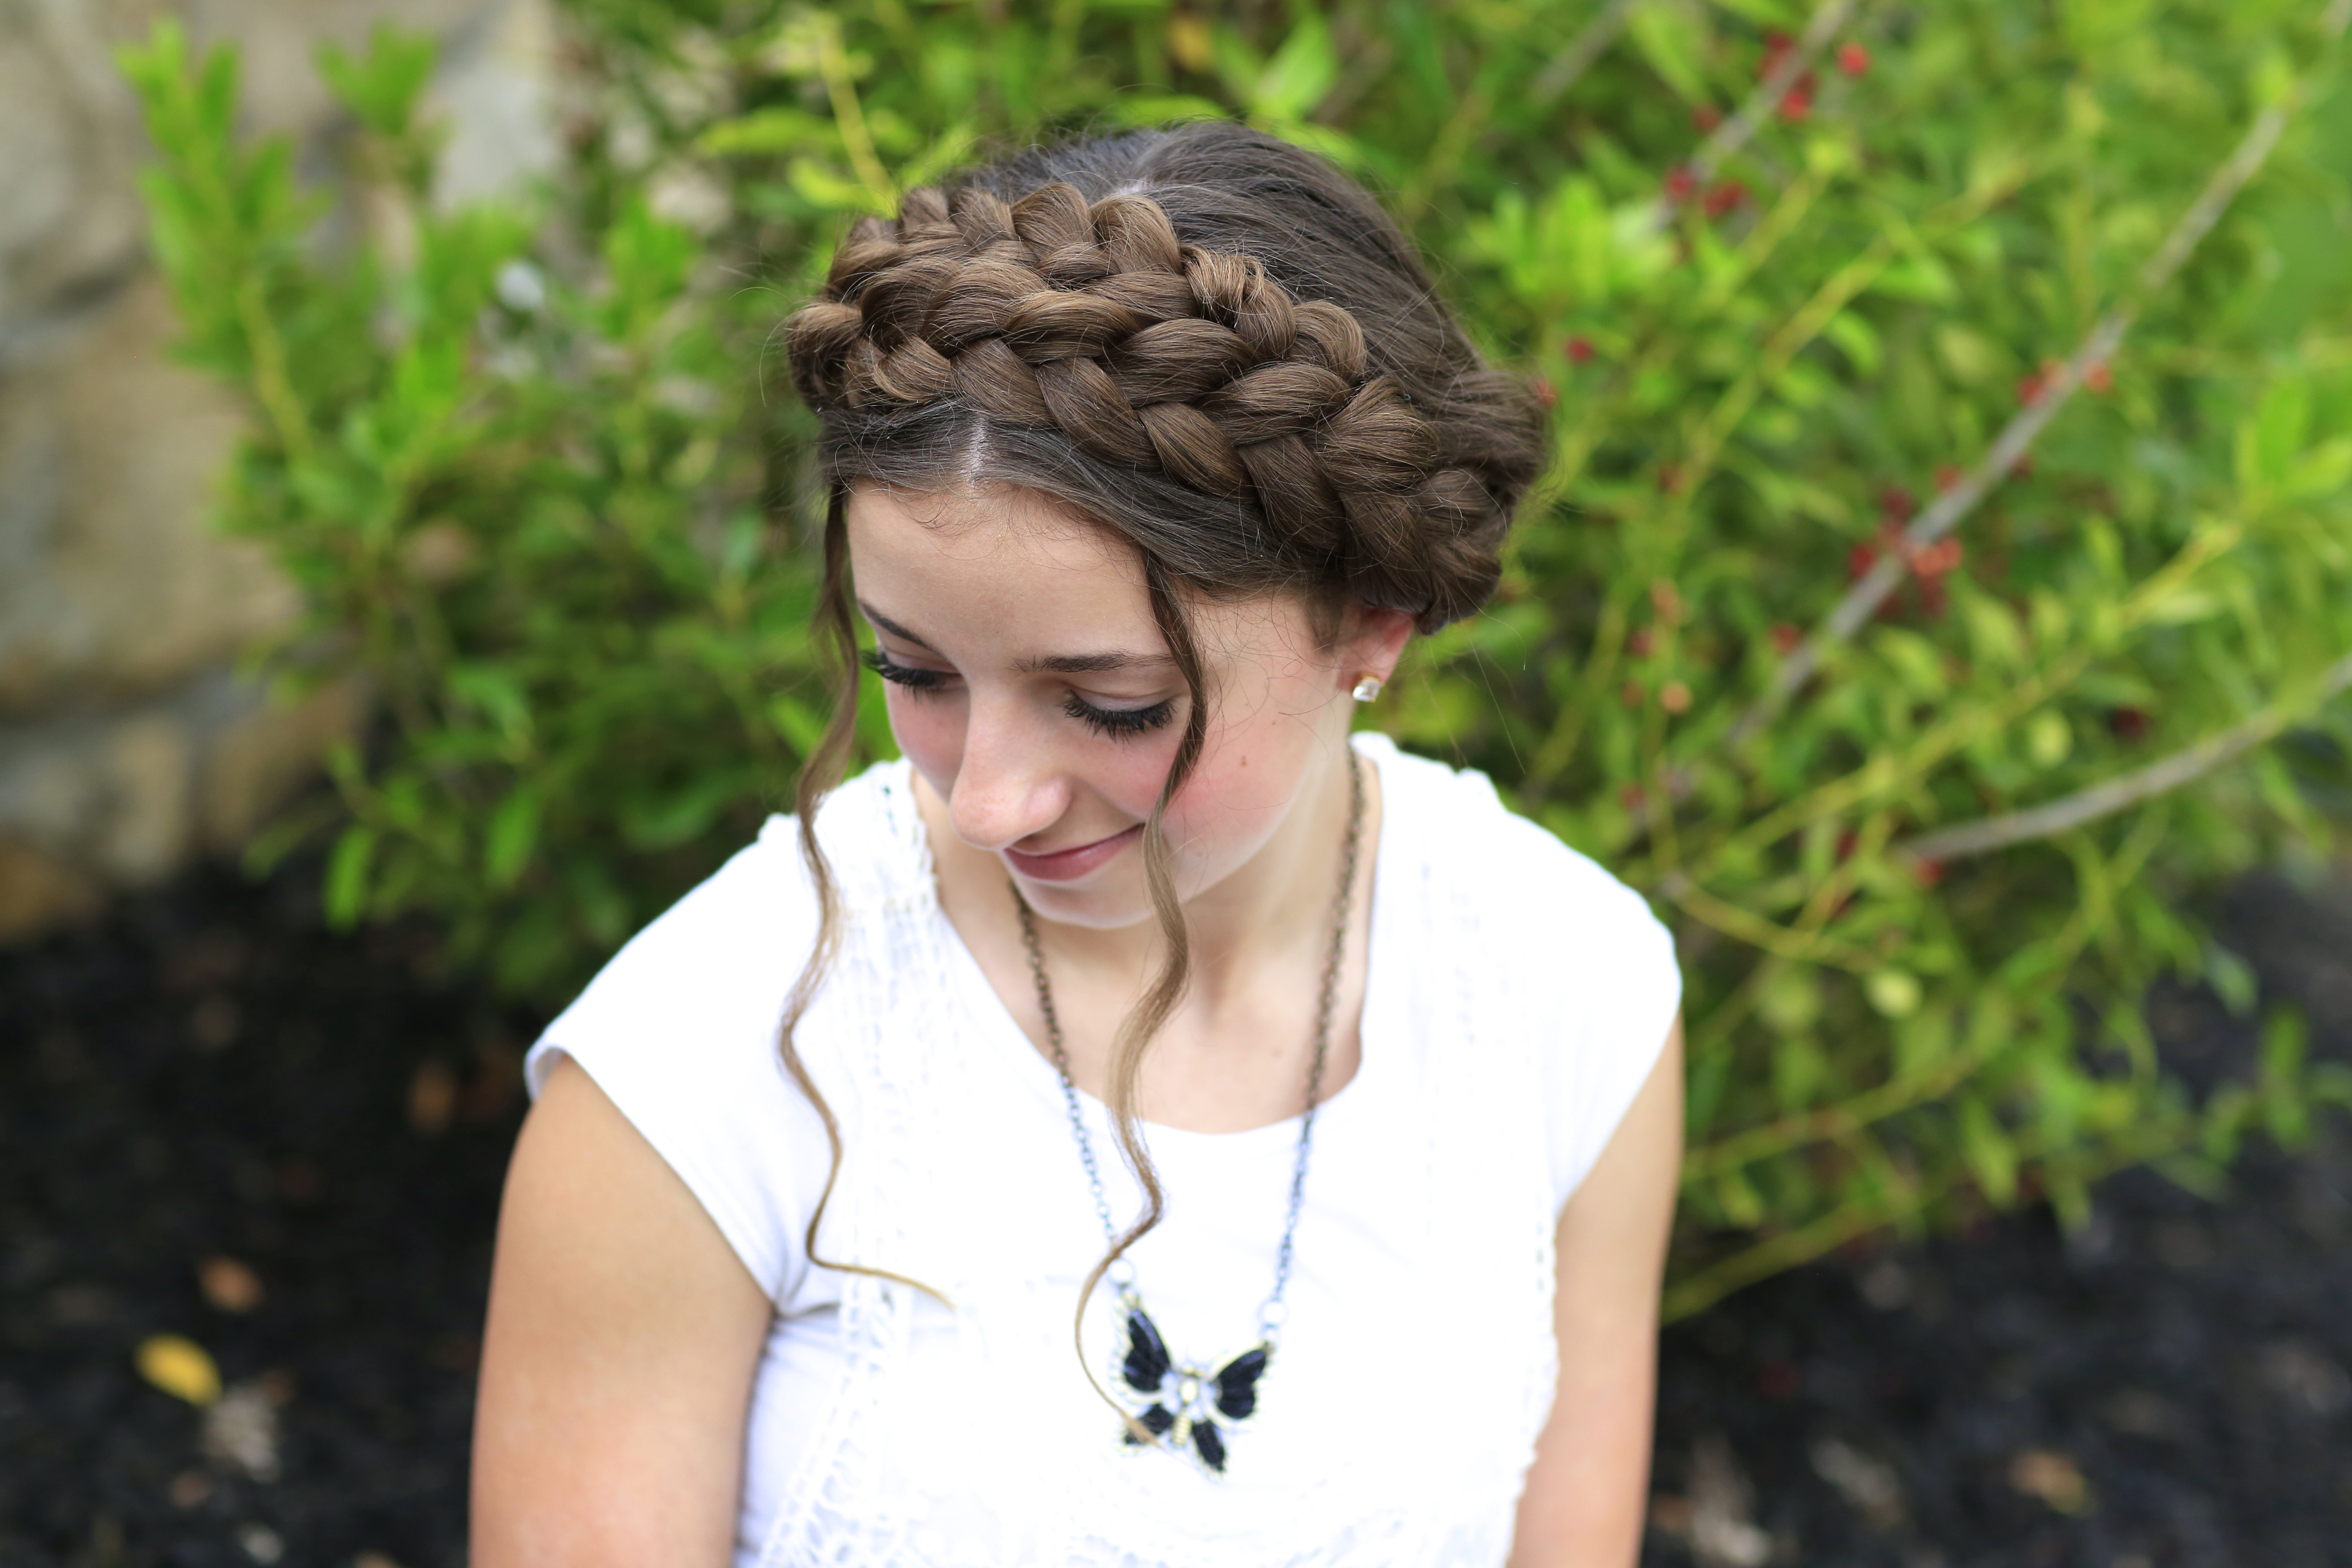 Best ideas about Cute Girls Haircuts . Save or Pin Milkmaid Braid Cute Summer Hairstyles Now.